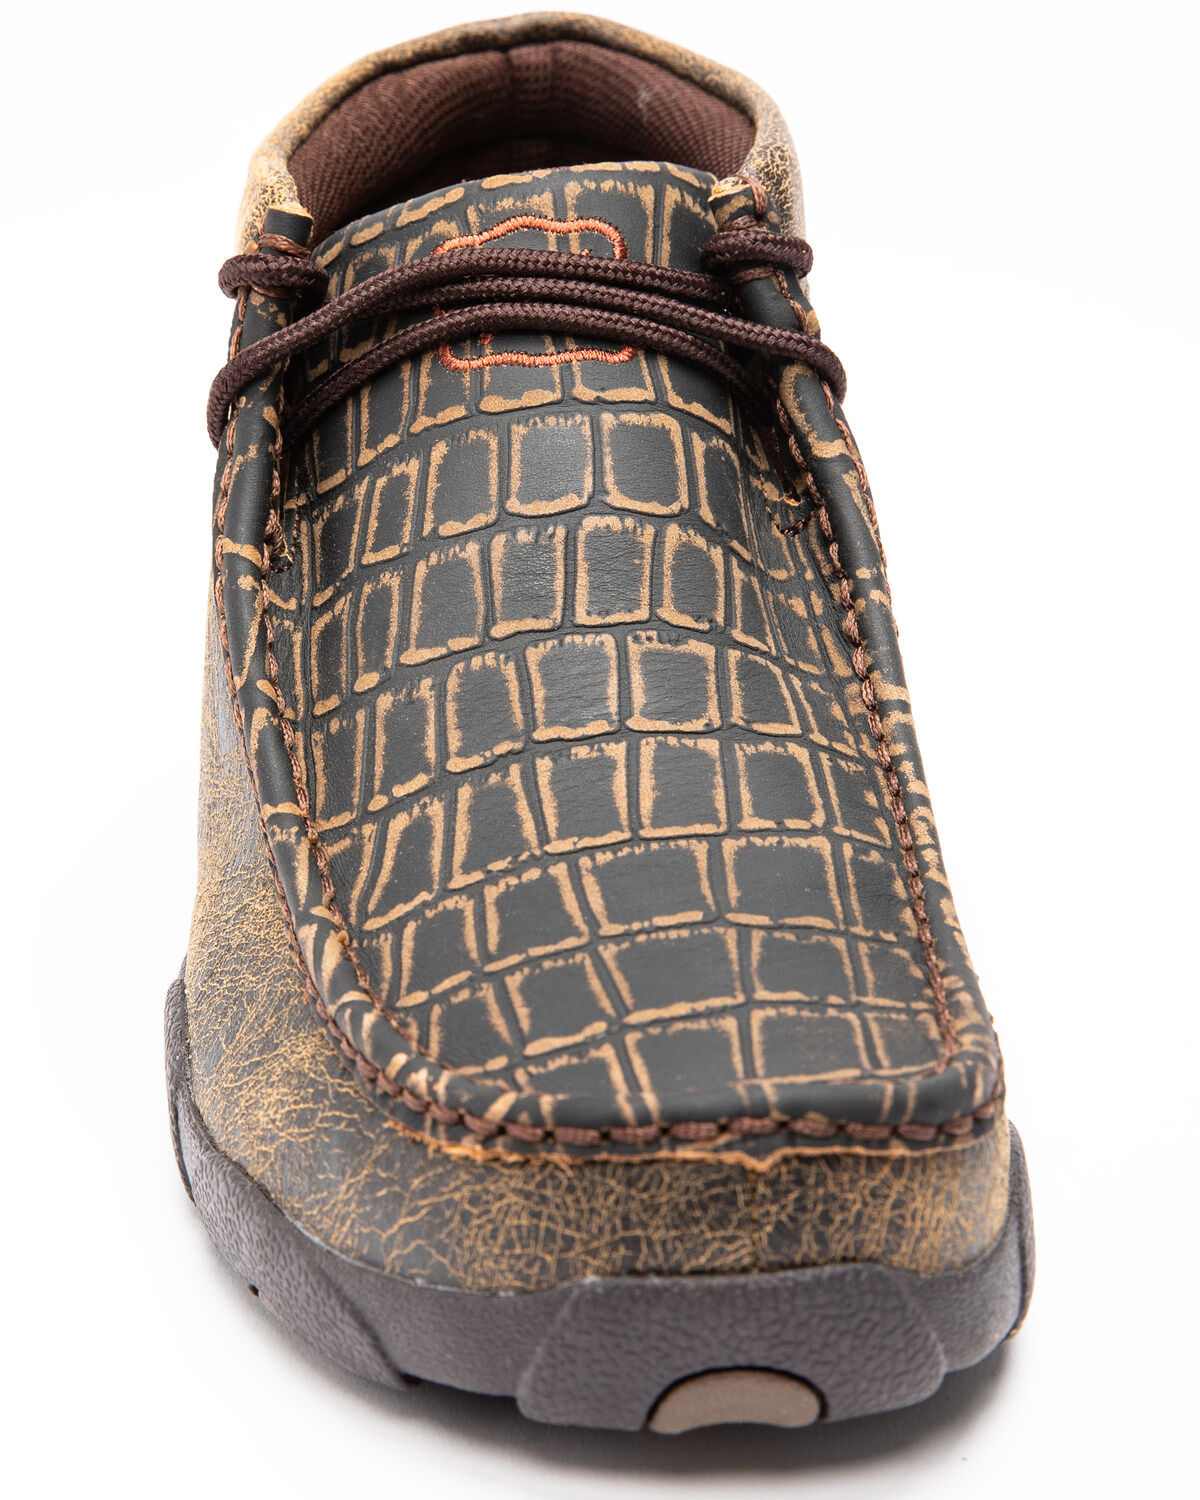 Twisted X Men's Caiman Print Driving